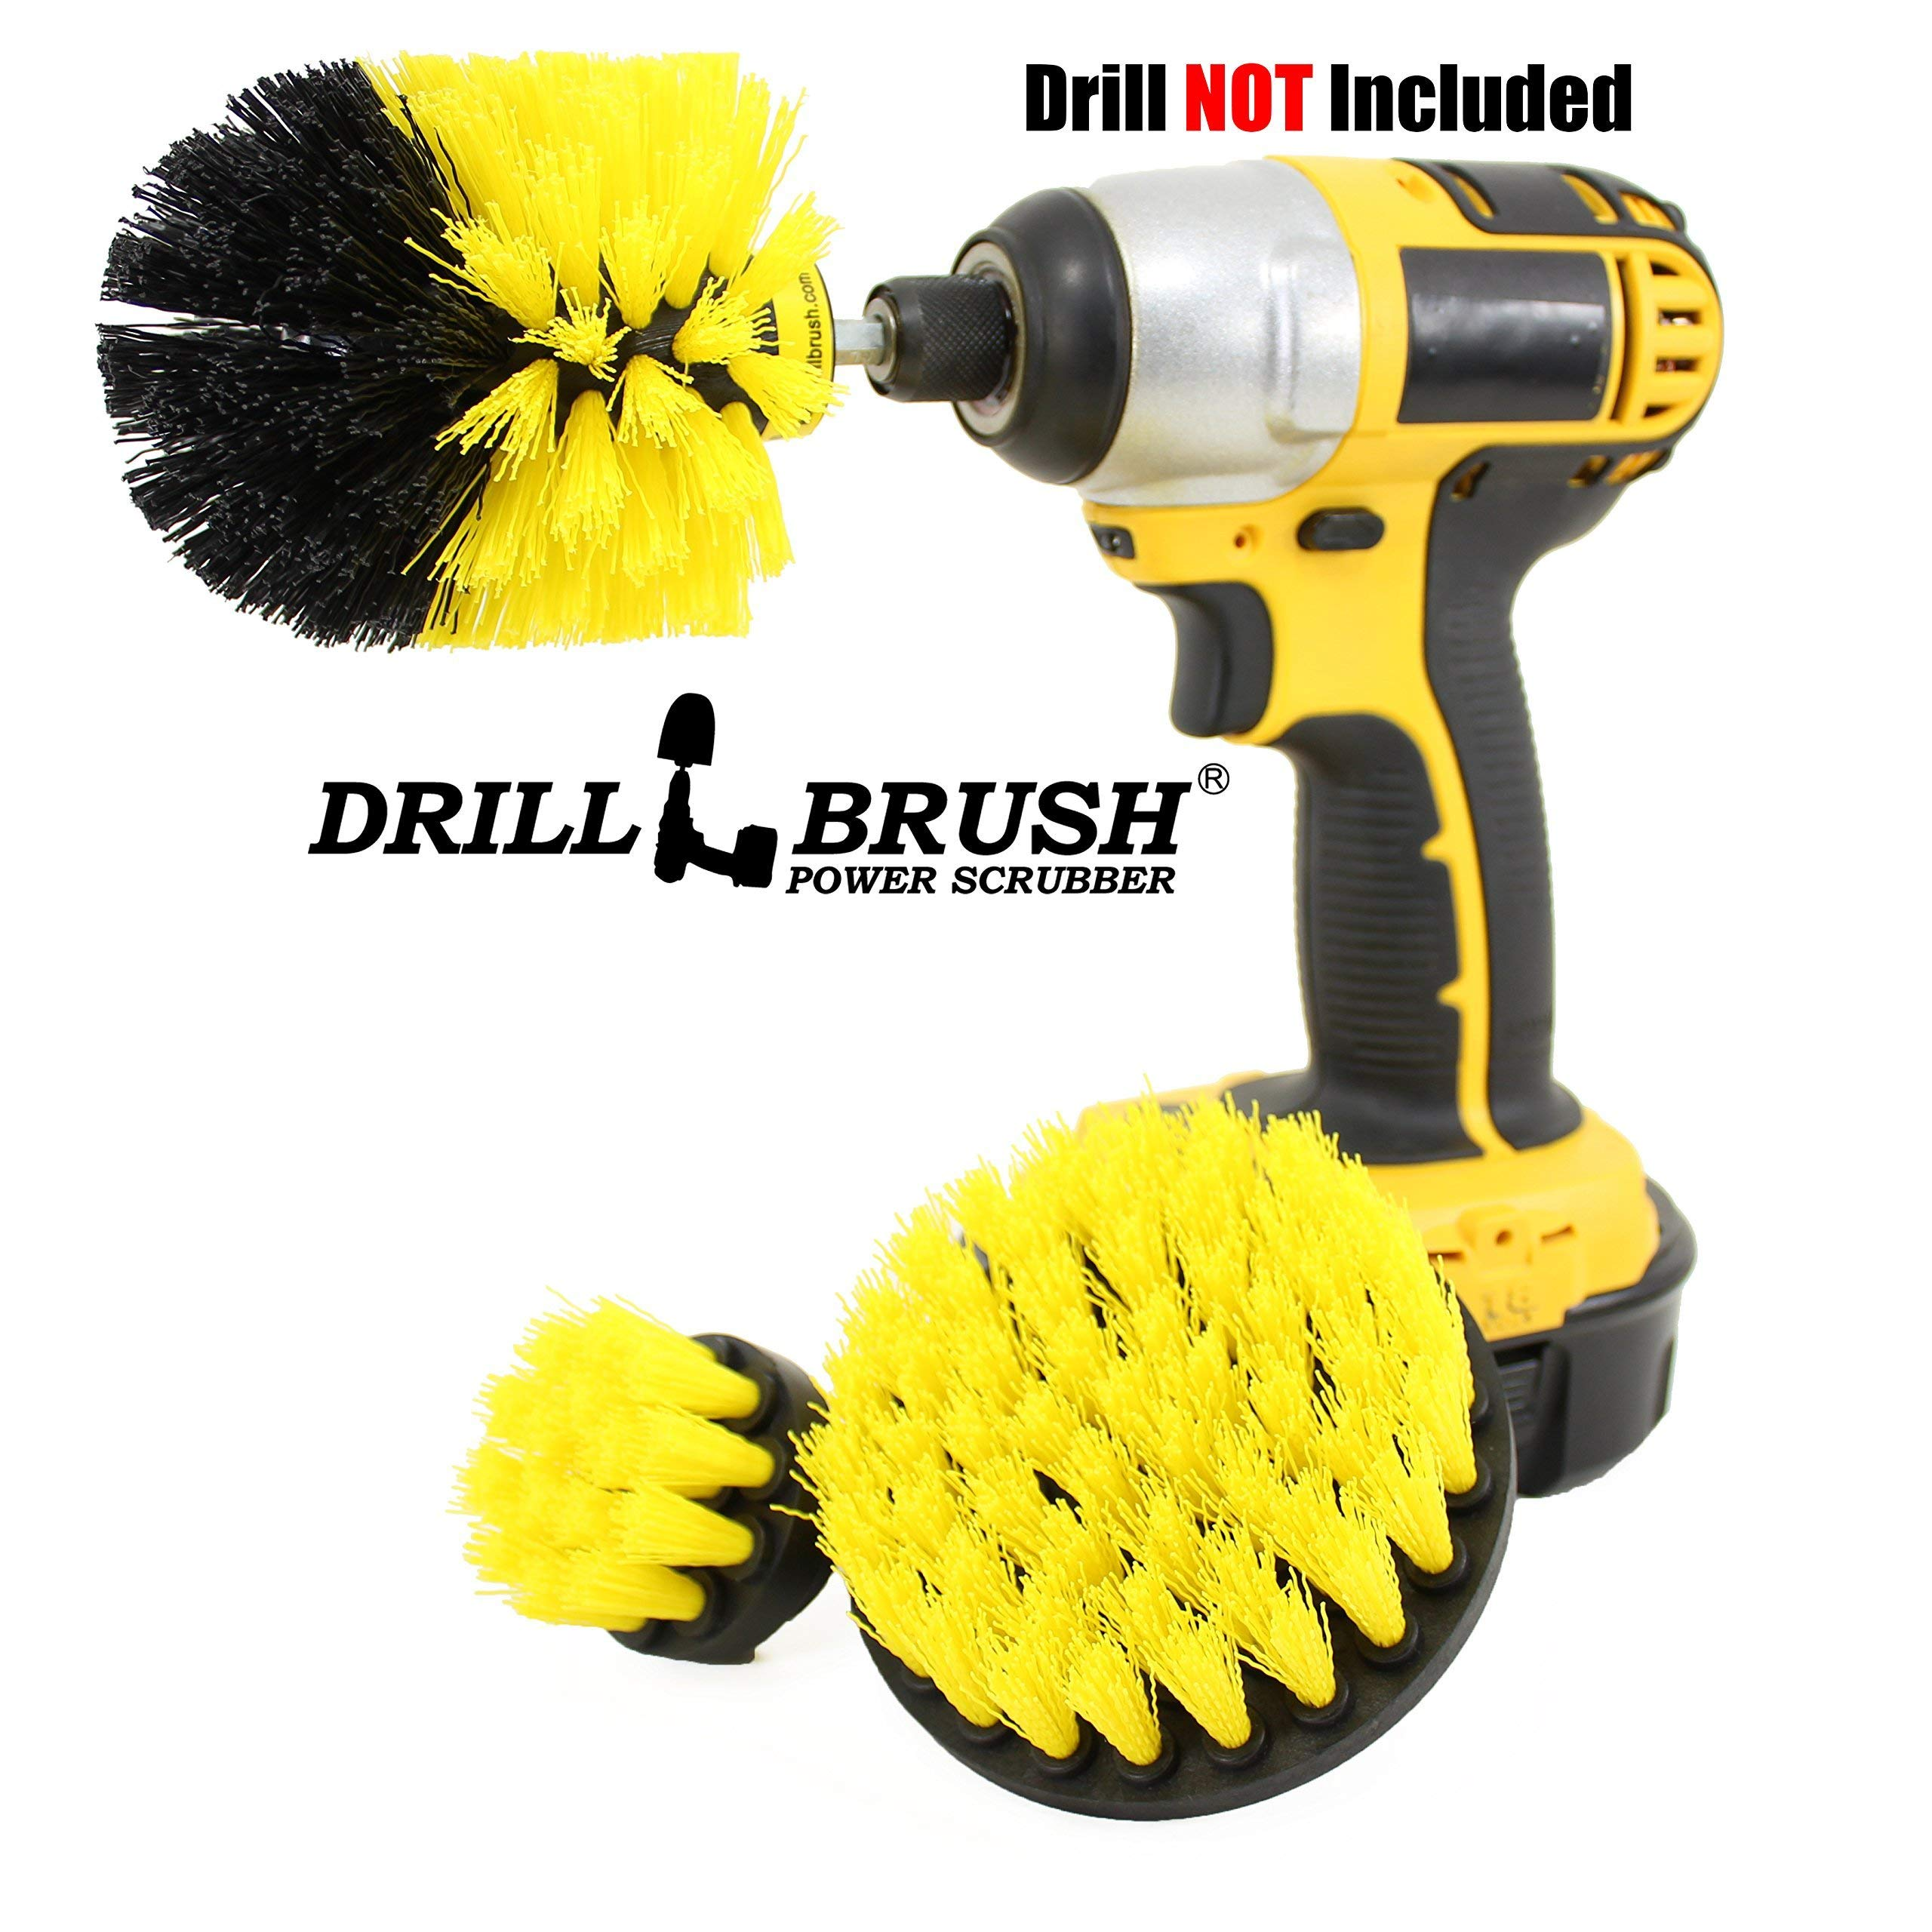 Amazon.com: Drill Brush Power Scrubber Attachments - Bathroom ...